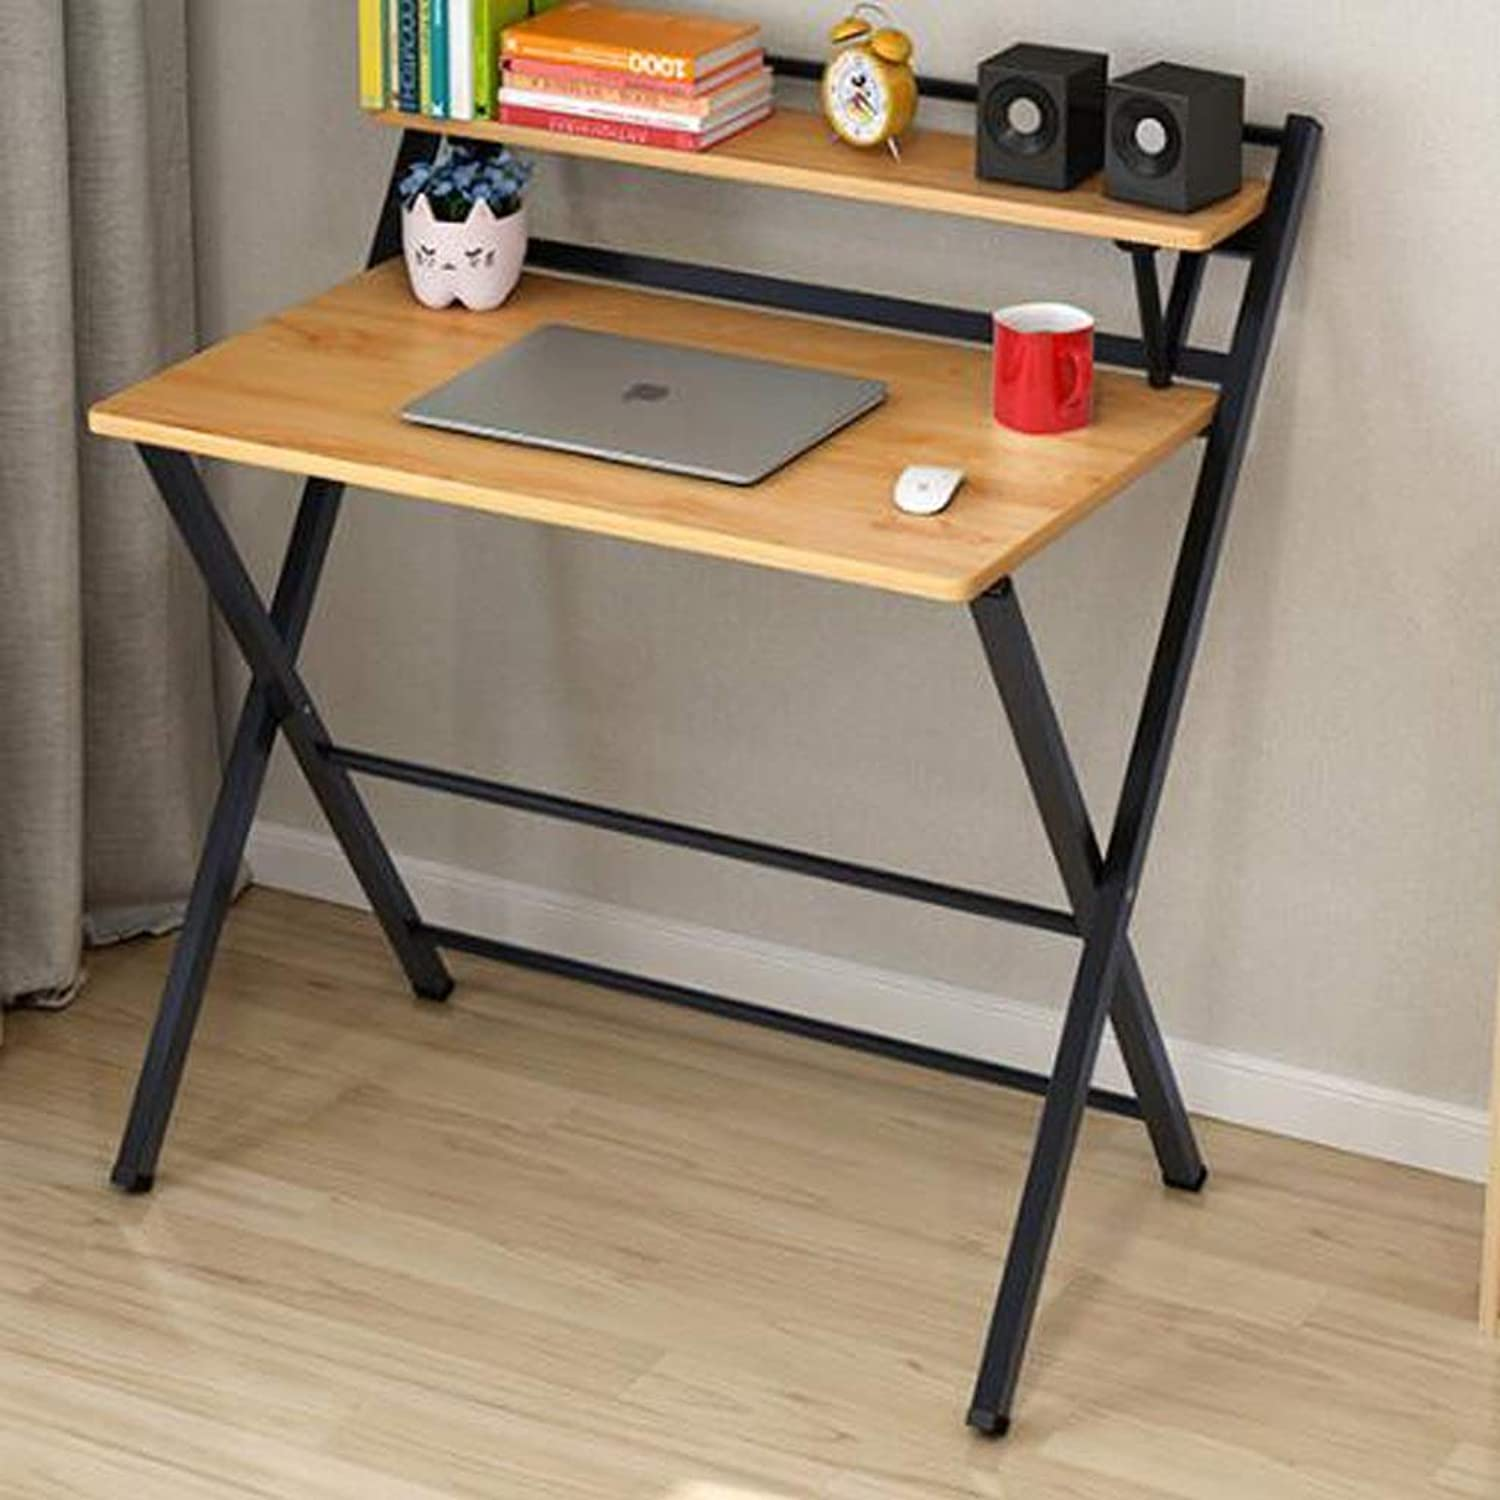 HBJP Folding Table Desktop Simple Computer Table Bedroom Study Table, Desk Student Portable Small Table Folding Table (color   B)